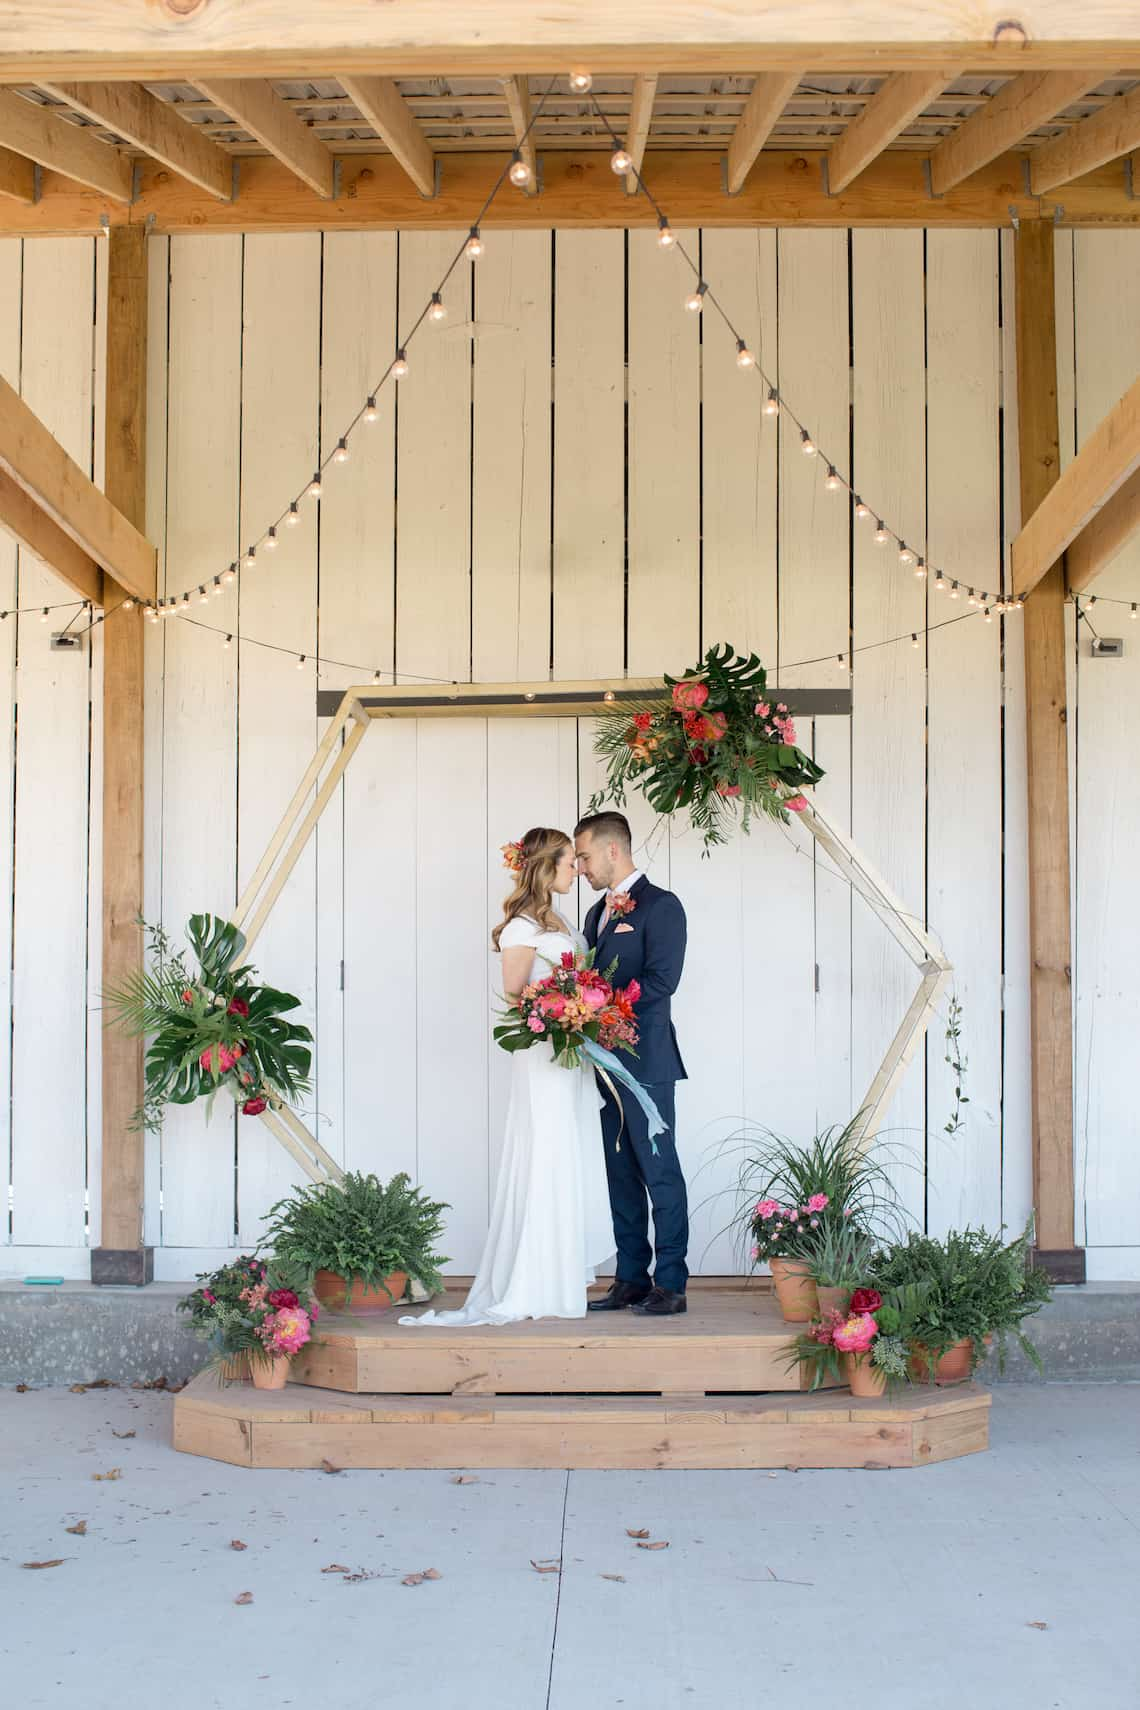 Tropical Barn Wedding in Kansas City